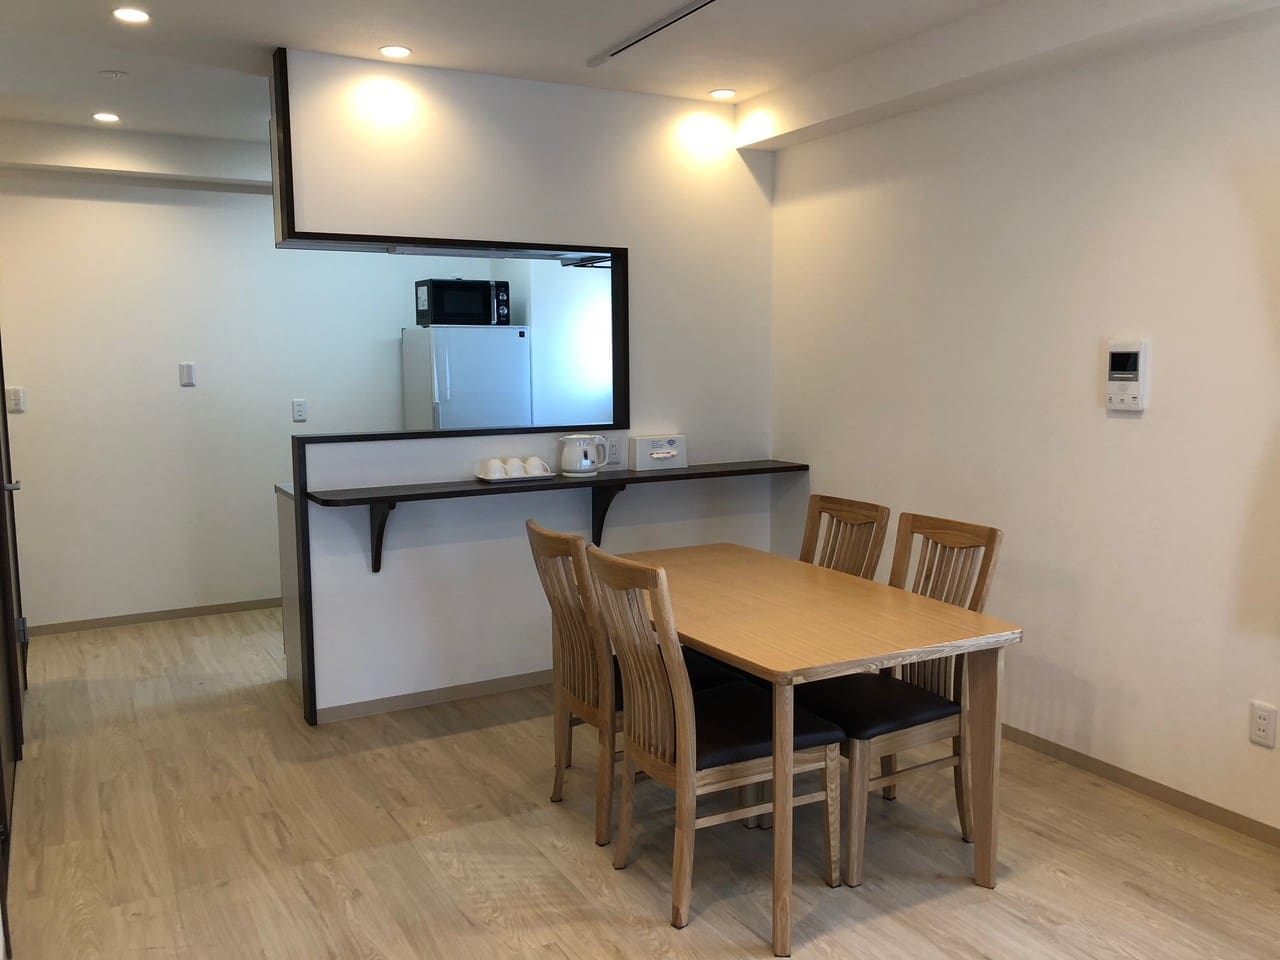 Family room dining